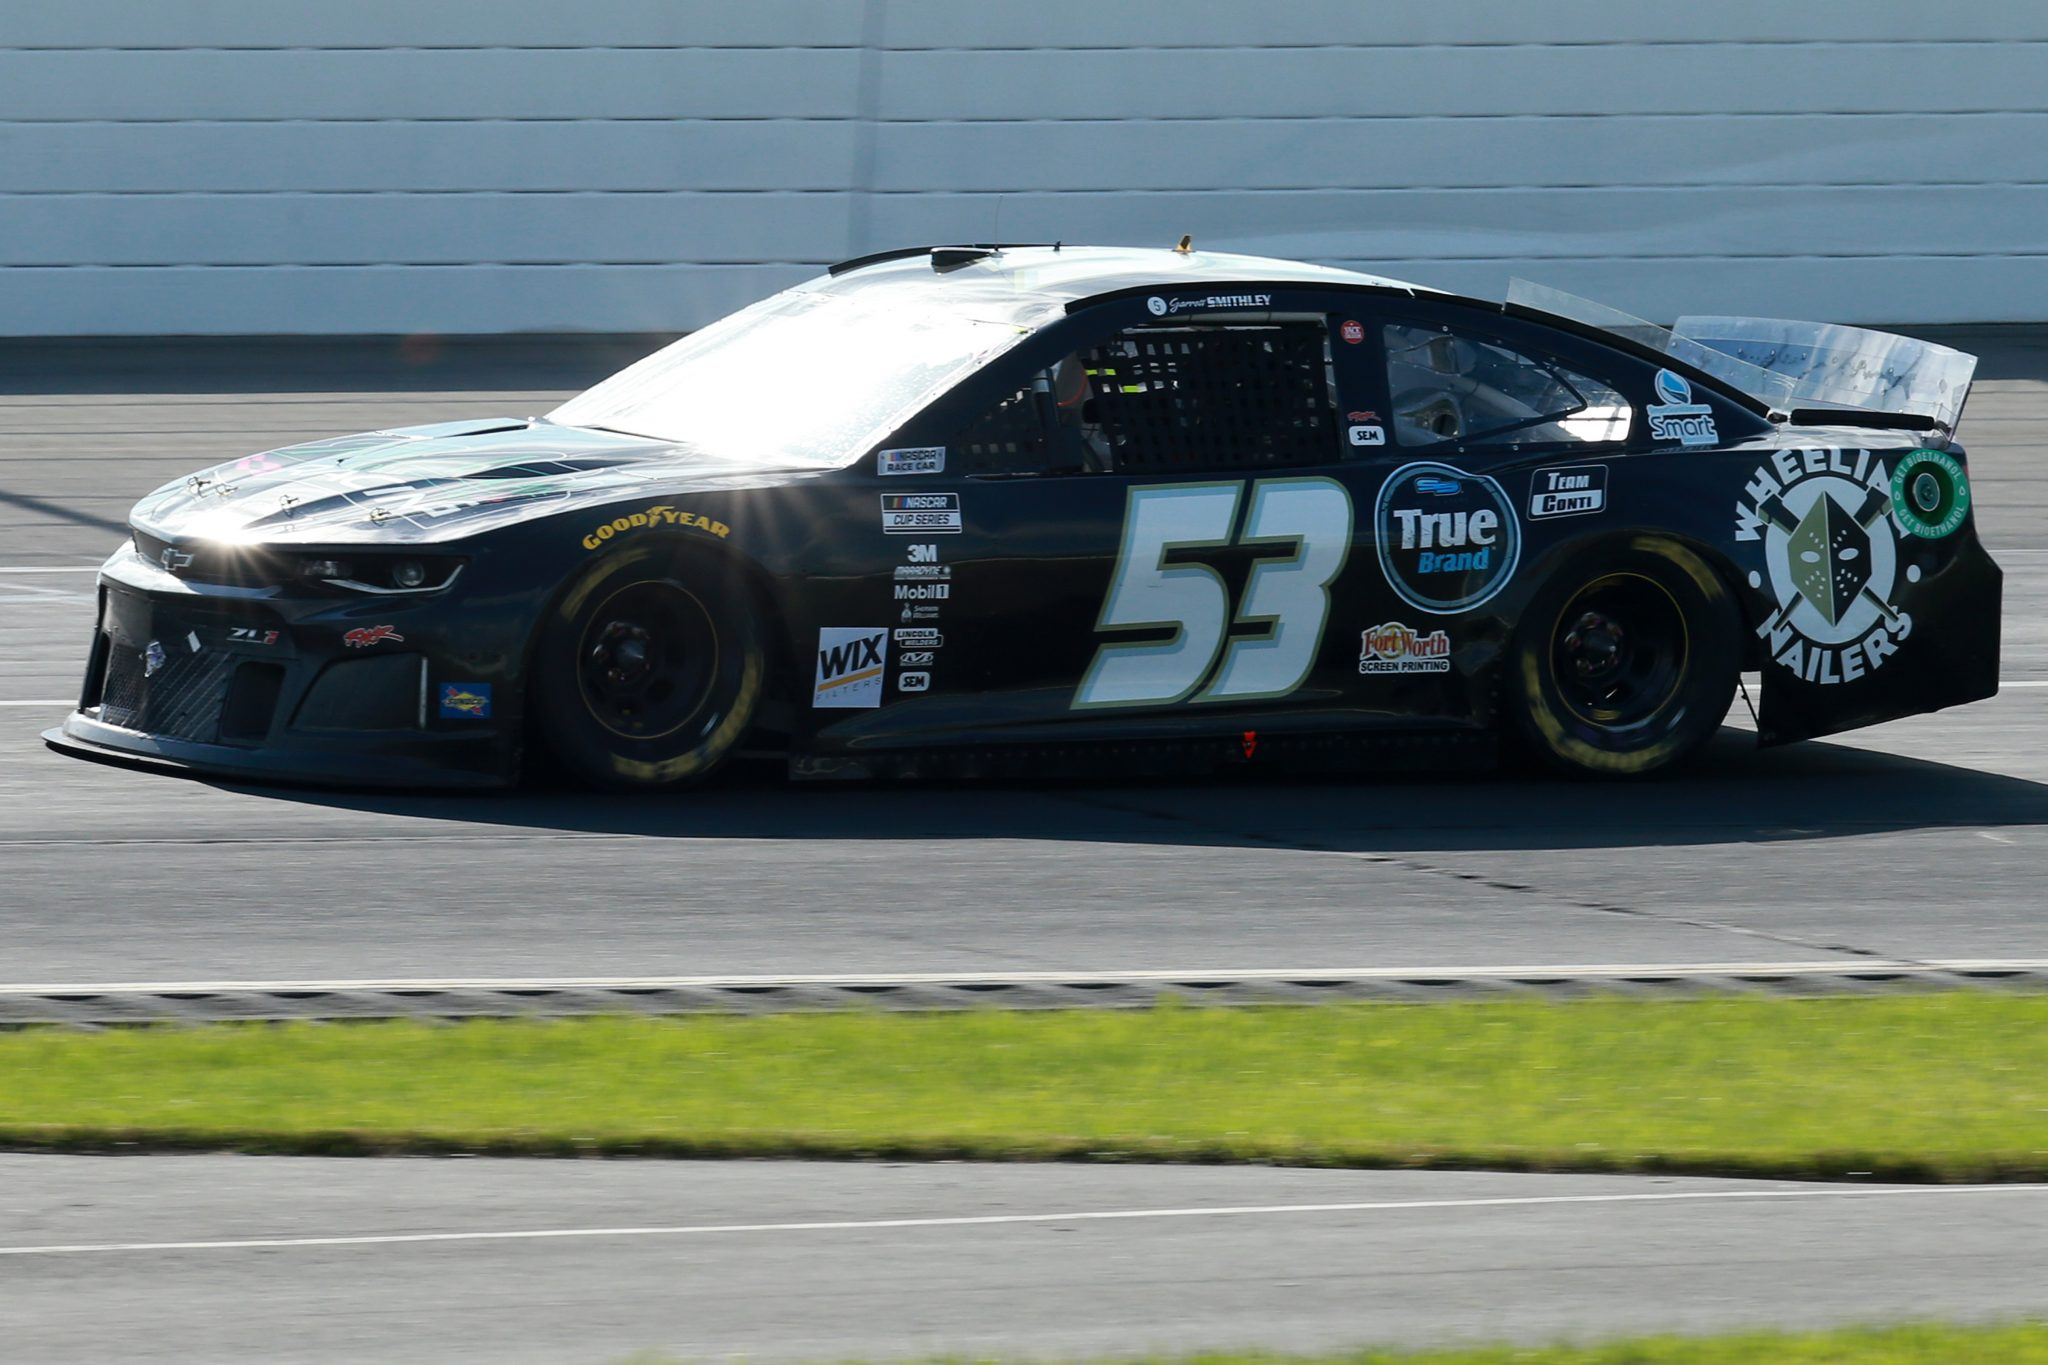 LONG POND, PENNSYLVANIA - JUNE 27: Garrett Smithley, driver of the #53 RichMar Florists Chevrolet, drives during the NASCAR Cup Series Explore the Pocono Mountains 350 at Pocono Raceway on June 27, 2021 in Long Pond, Pennsylvania. (Photo by Sean Gardner/Getty Images) | Getty Images